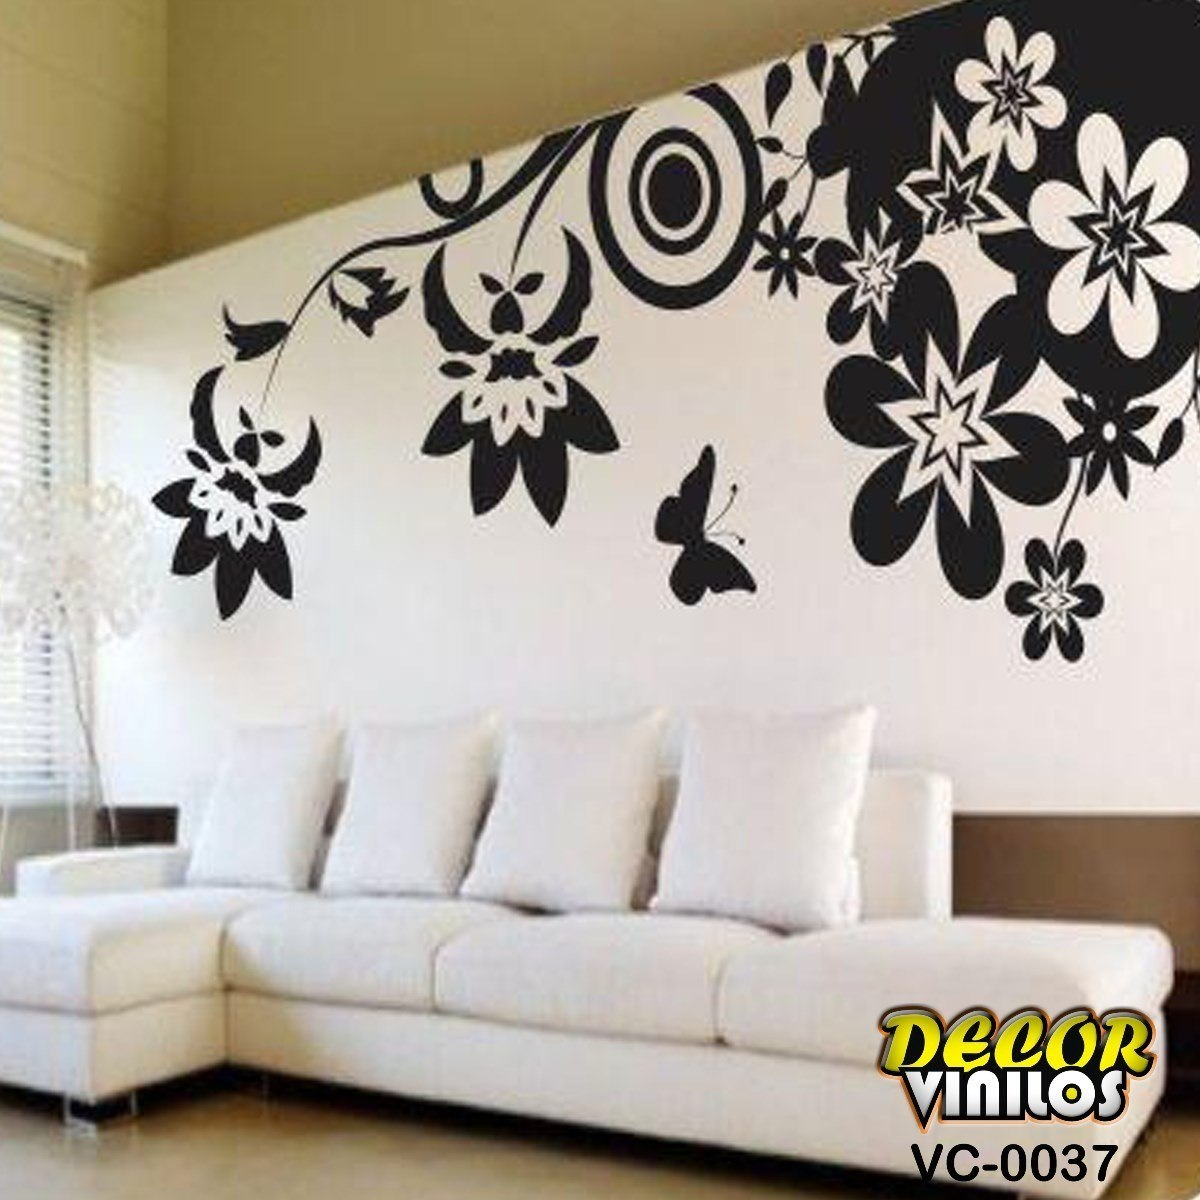 Vinilos decorativos pared vinilos pared vinilos para for Vinilos decorativos